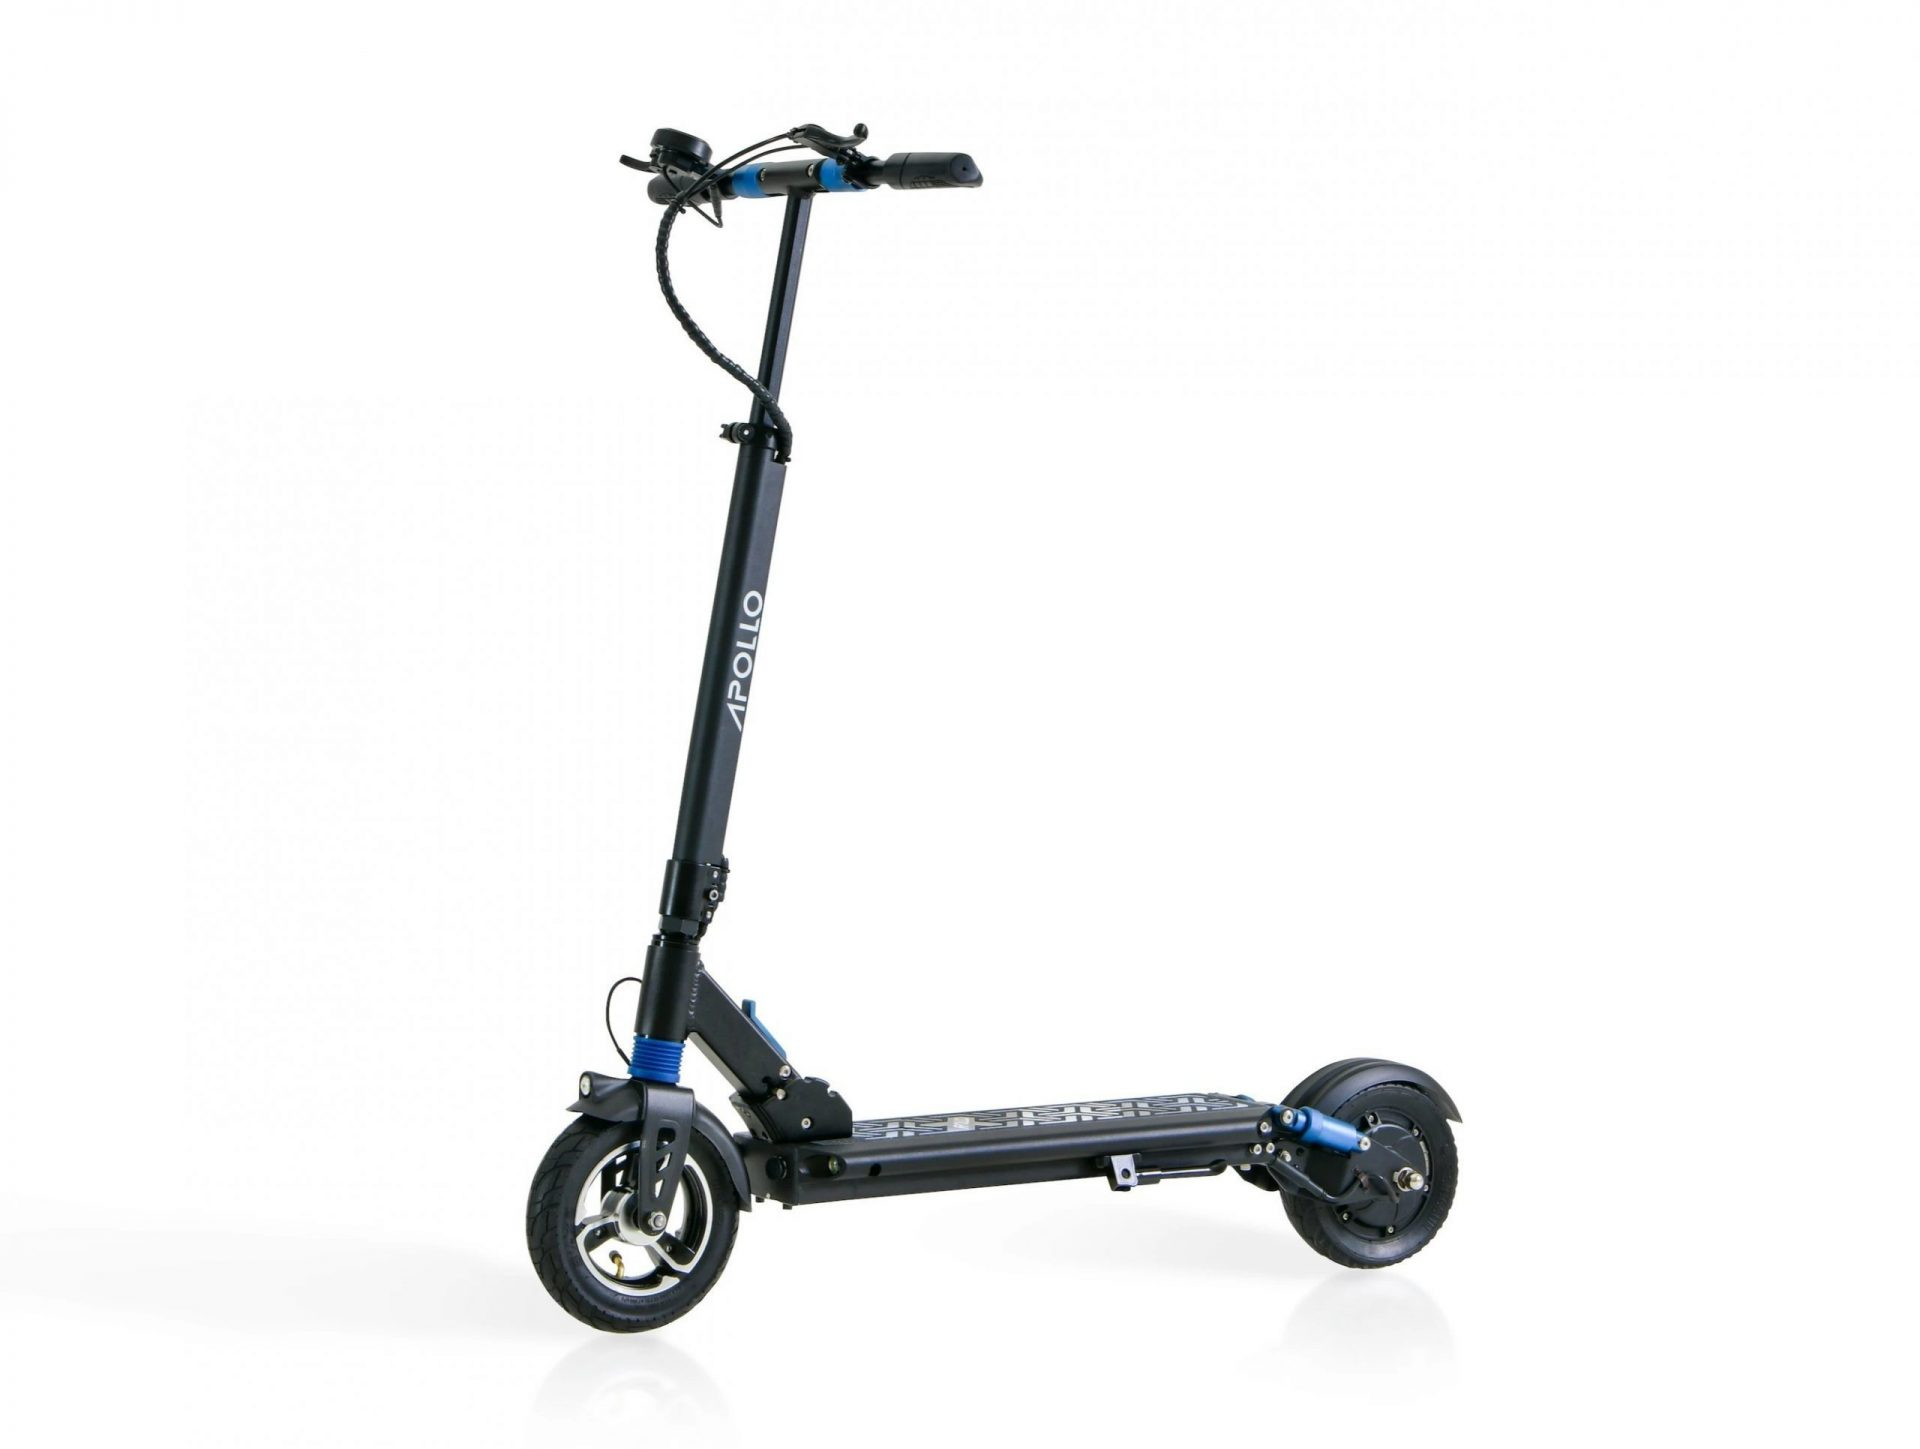 Apollo Light scooter review 2020